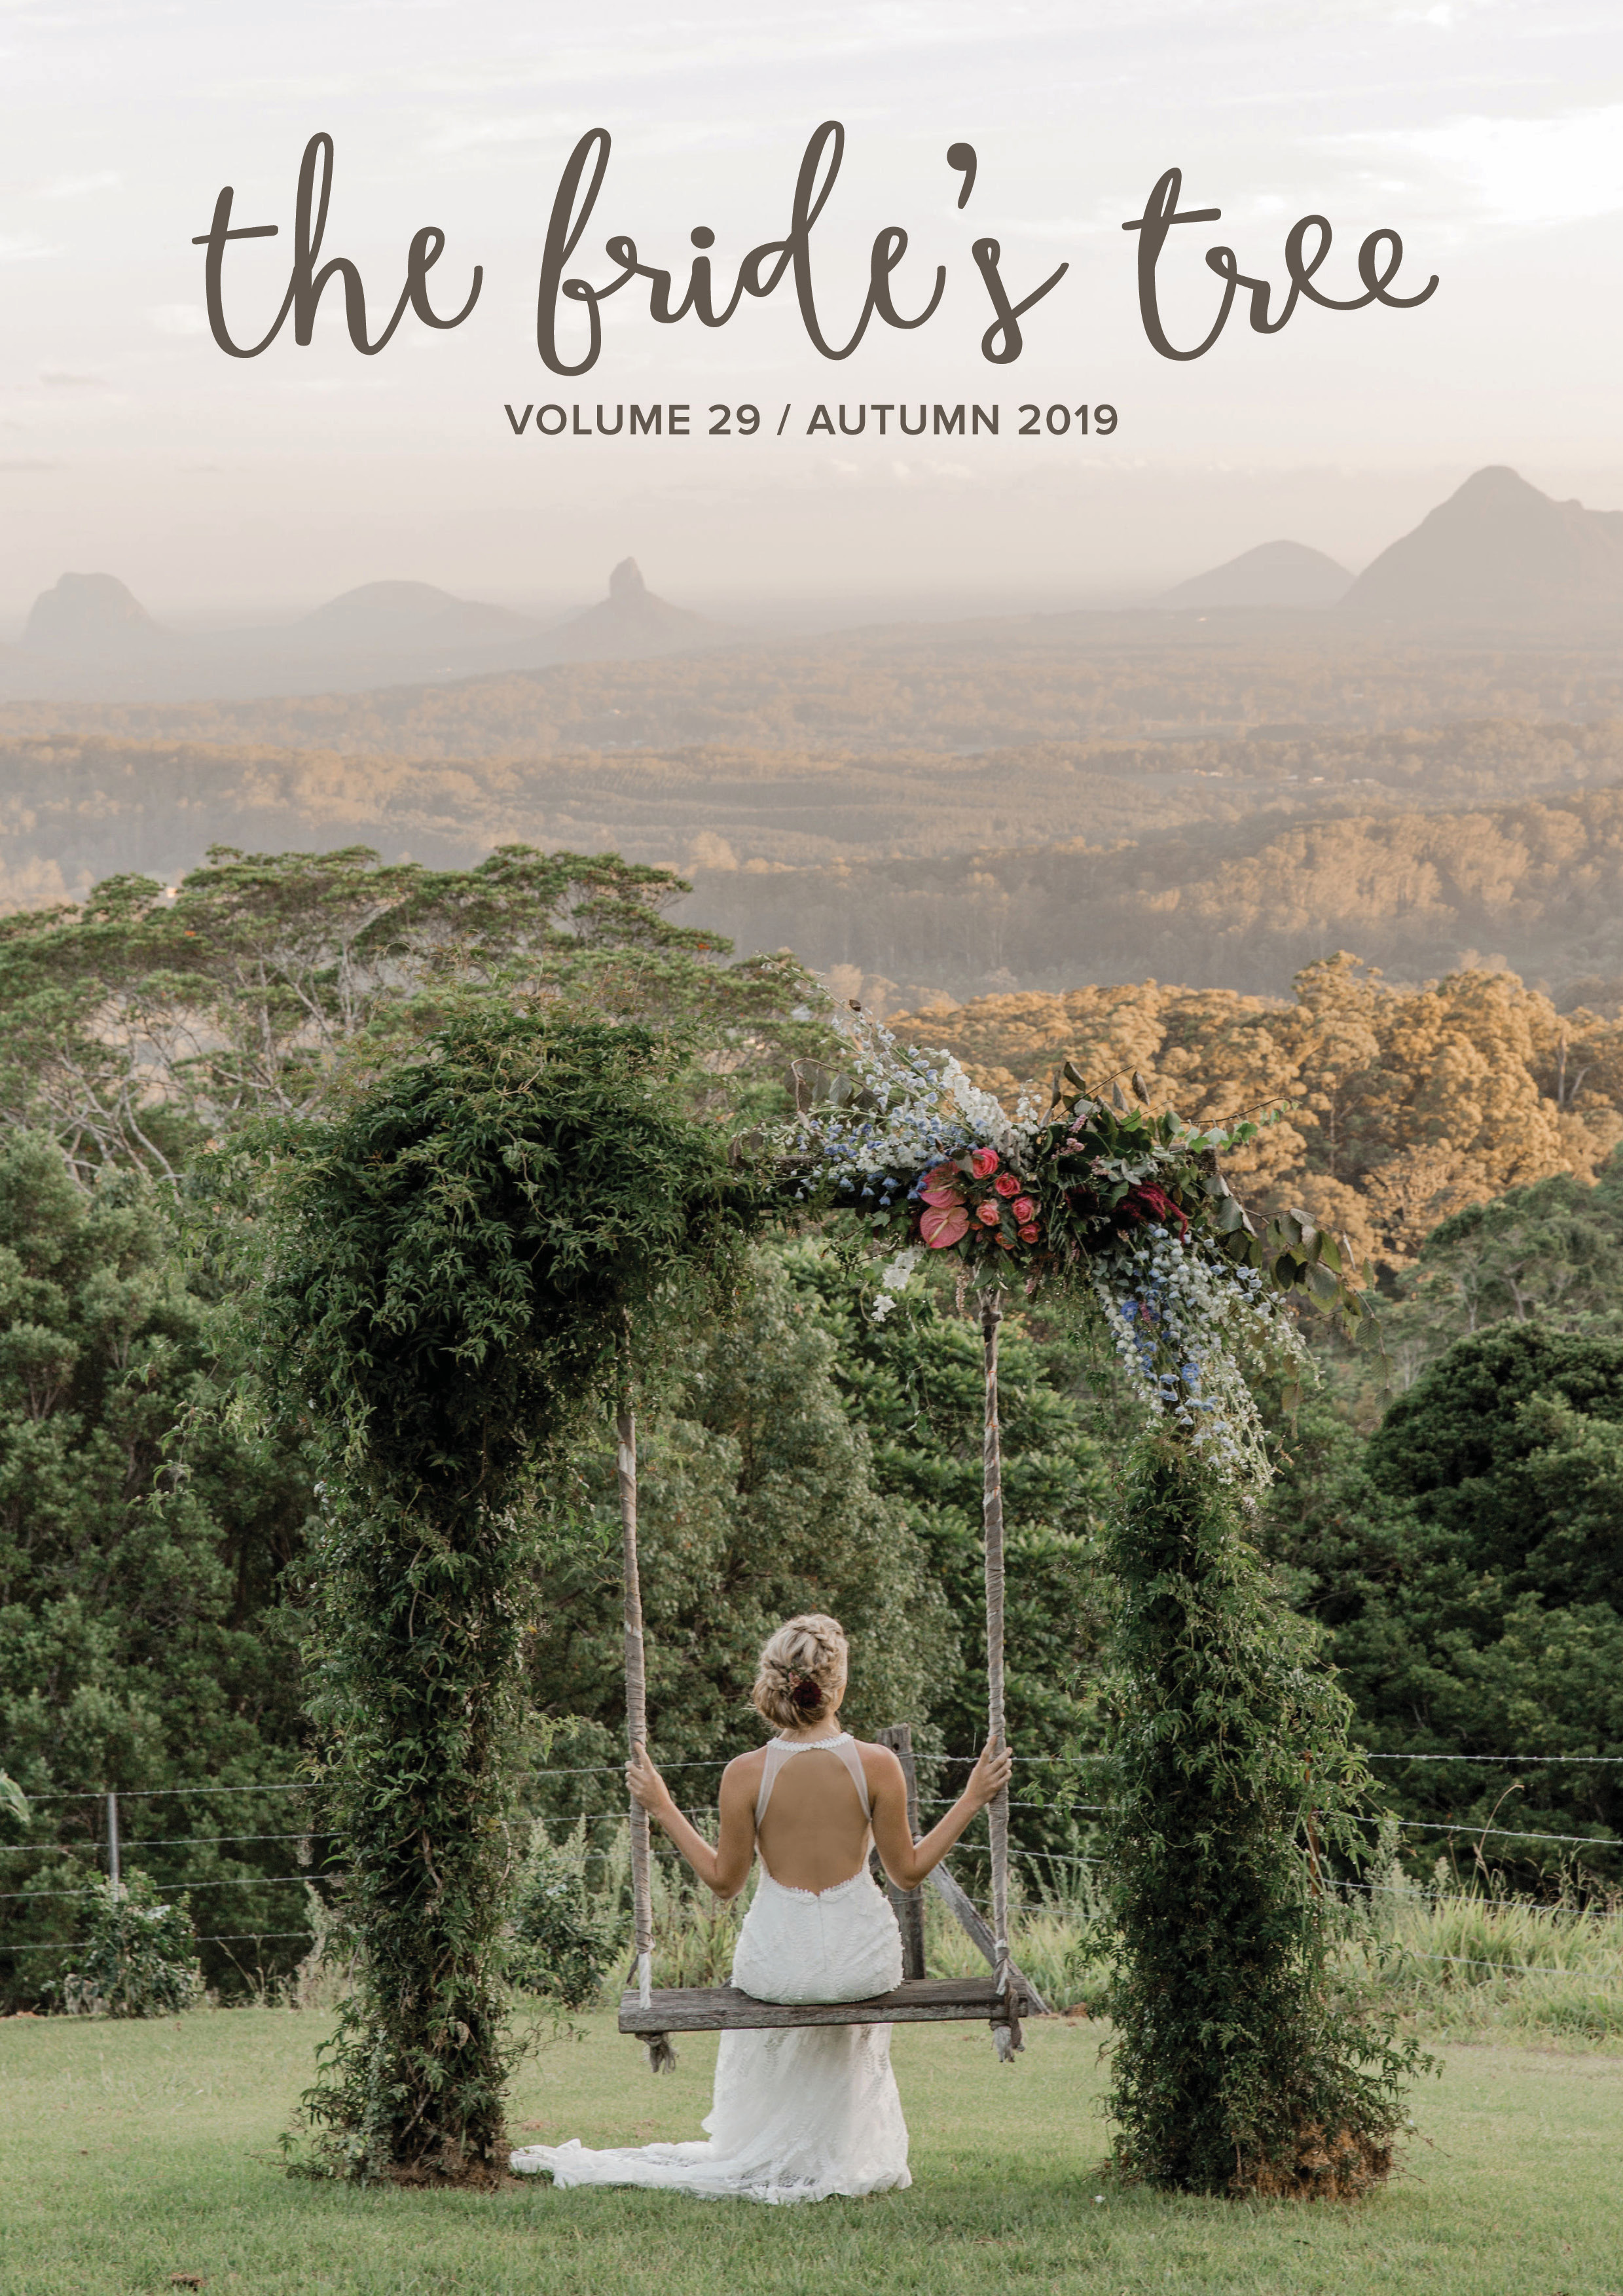 AAA2AutumnBT-mag-Summer-2019-cover copy 2